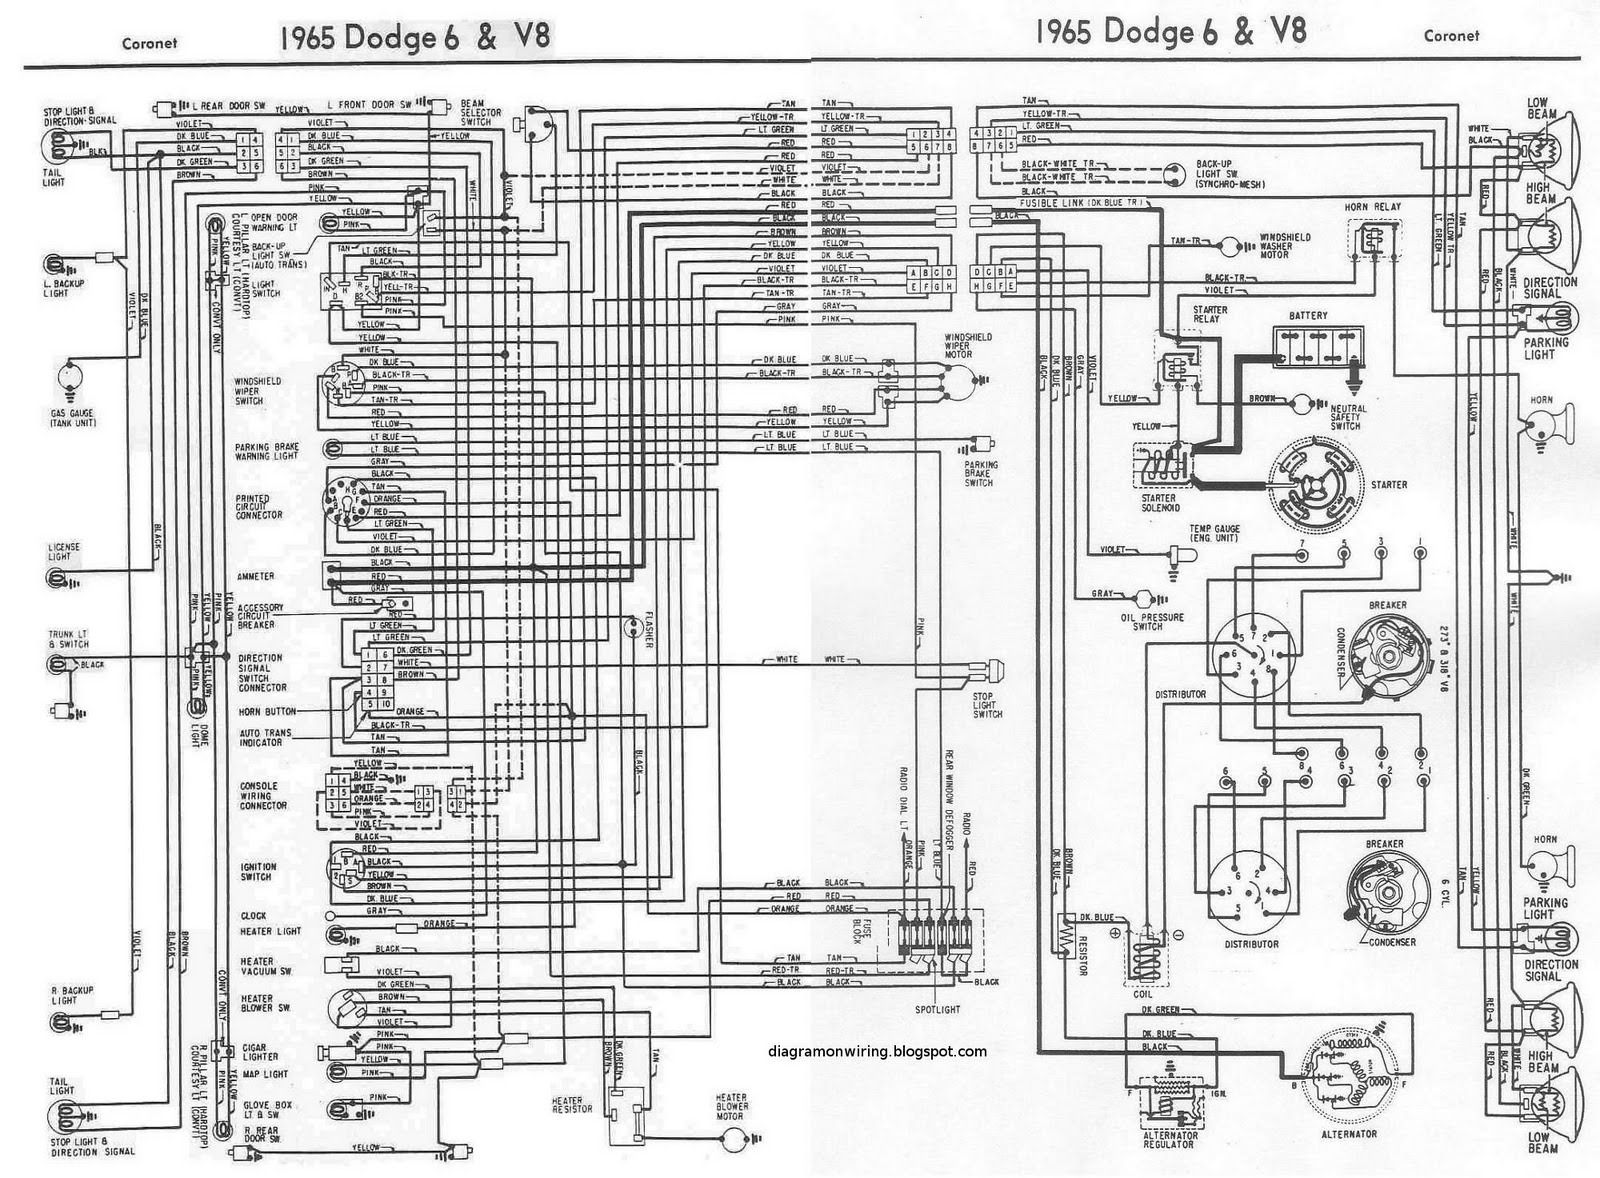 small resolution of wiring diagram for 1966 dodge coronet wiring diagram article review 1965 dodge coronet wiring diagram source 1968 coronet engine